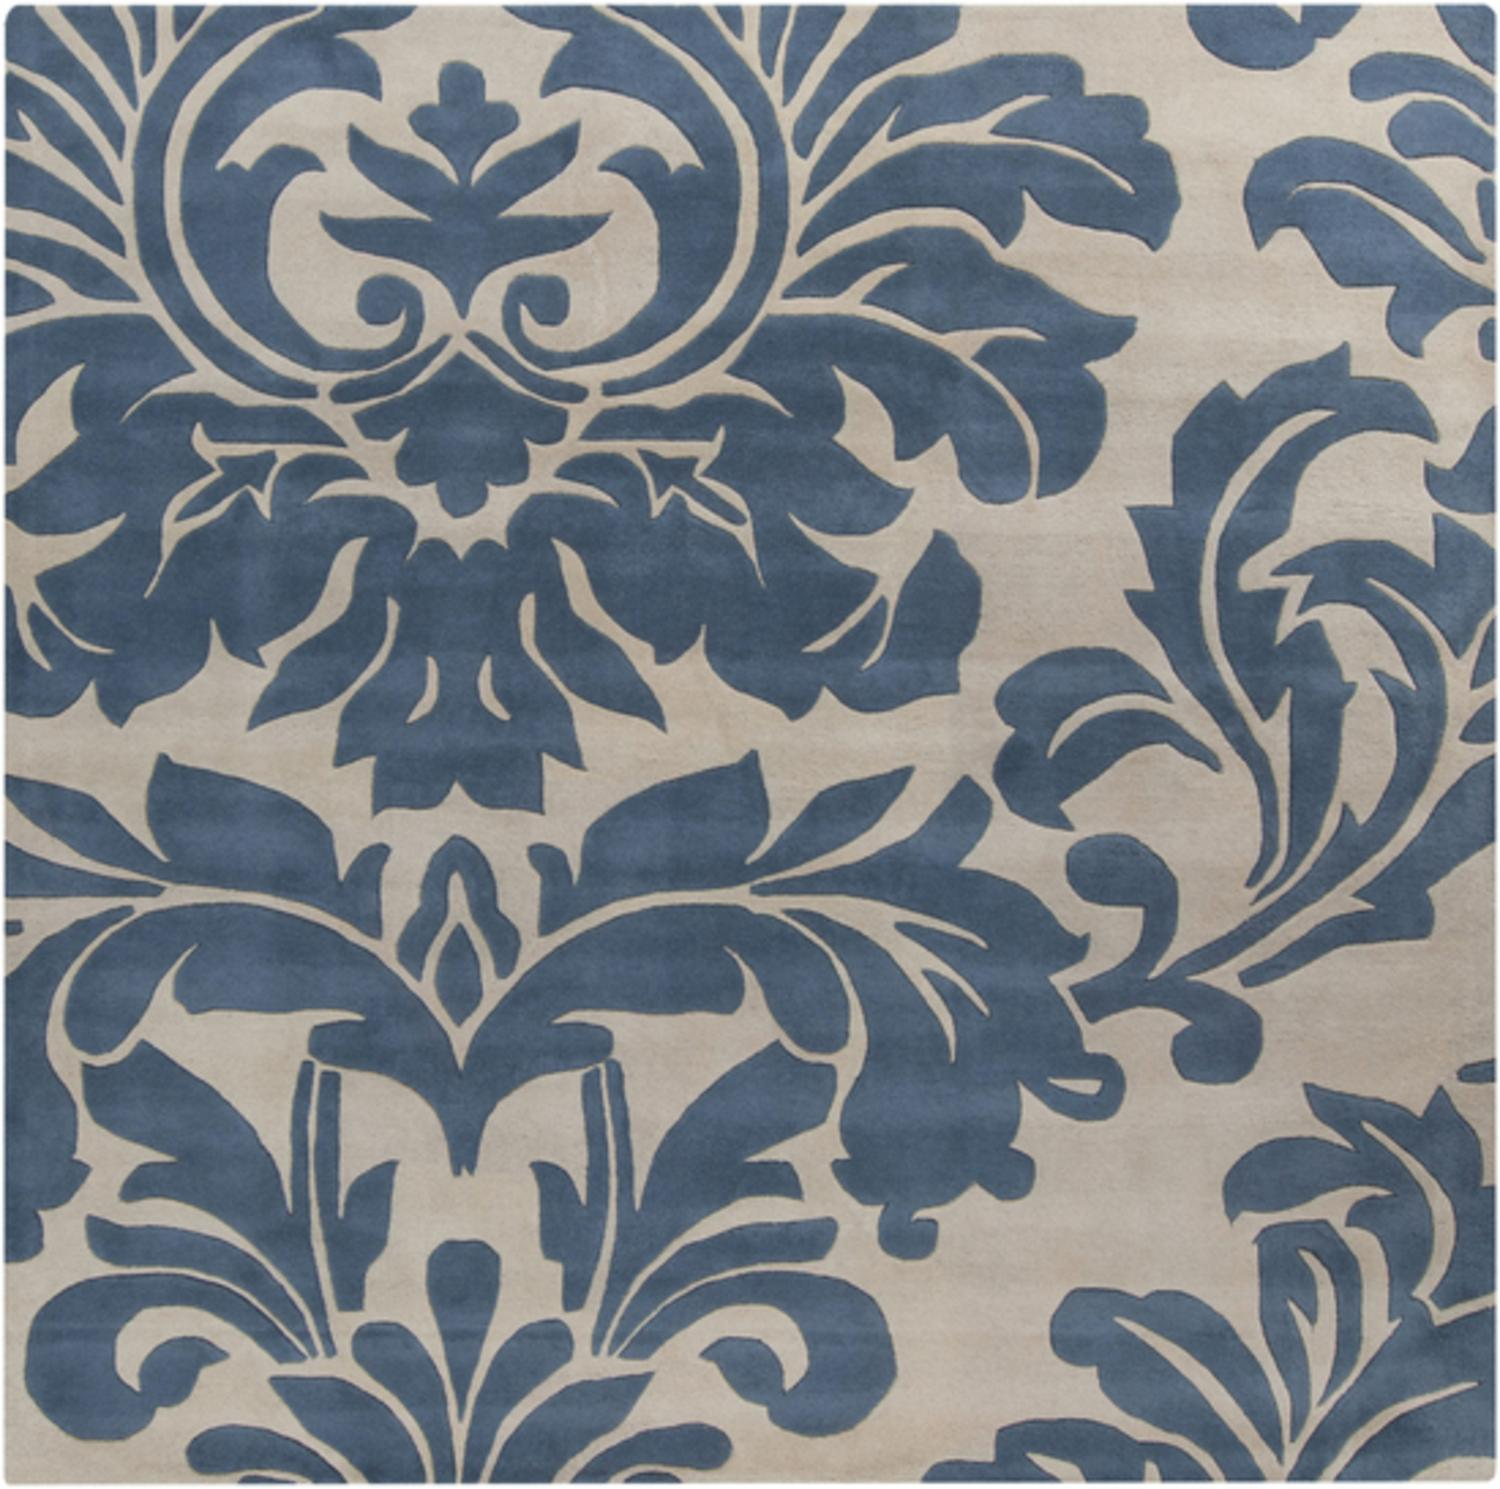 6' x 6' Falling Leaves Damask Slate Blue & Off-White Square Wool Area Throw Rug